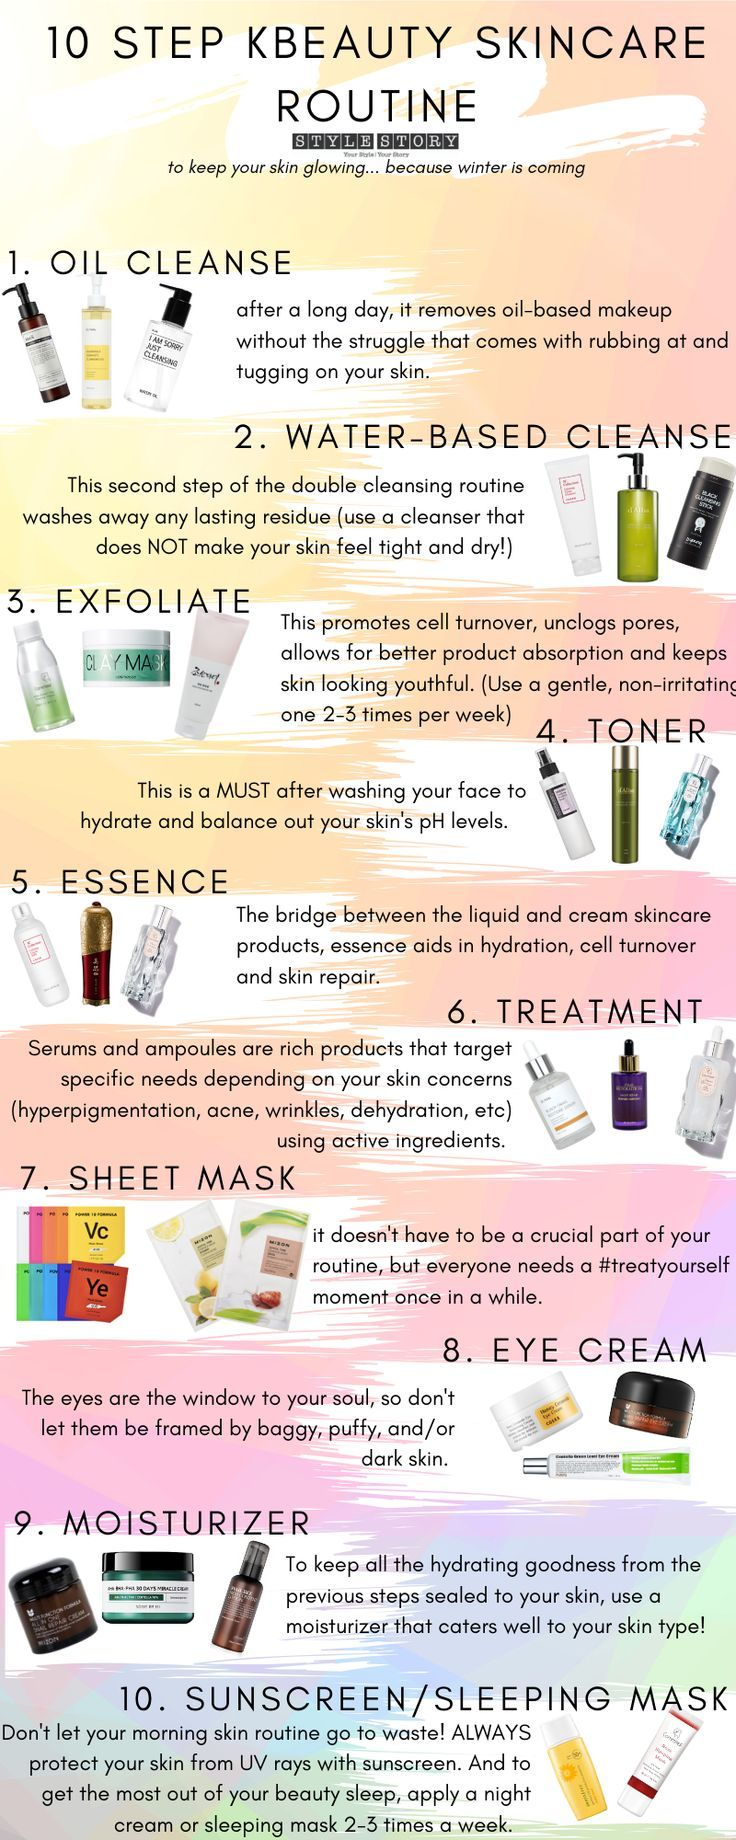 10 Step K Beauty Skincare Routine Beauty Makeup Nailart Hairstyles K Beauty Routine Skin Care Routine Steps Korean Beauty Routine